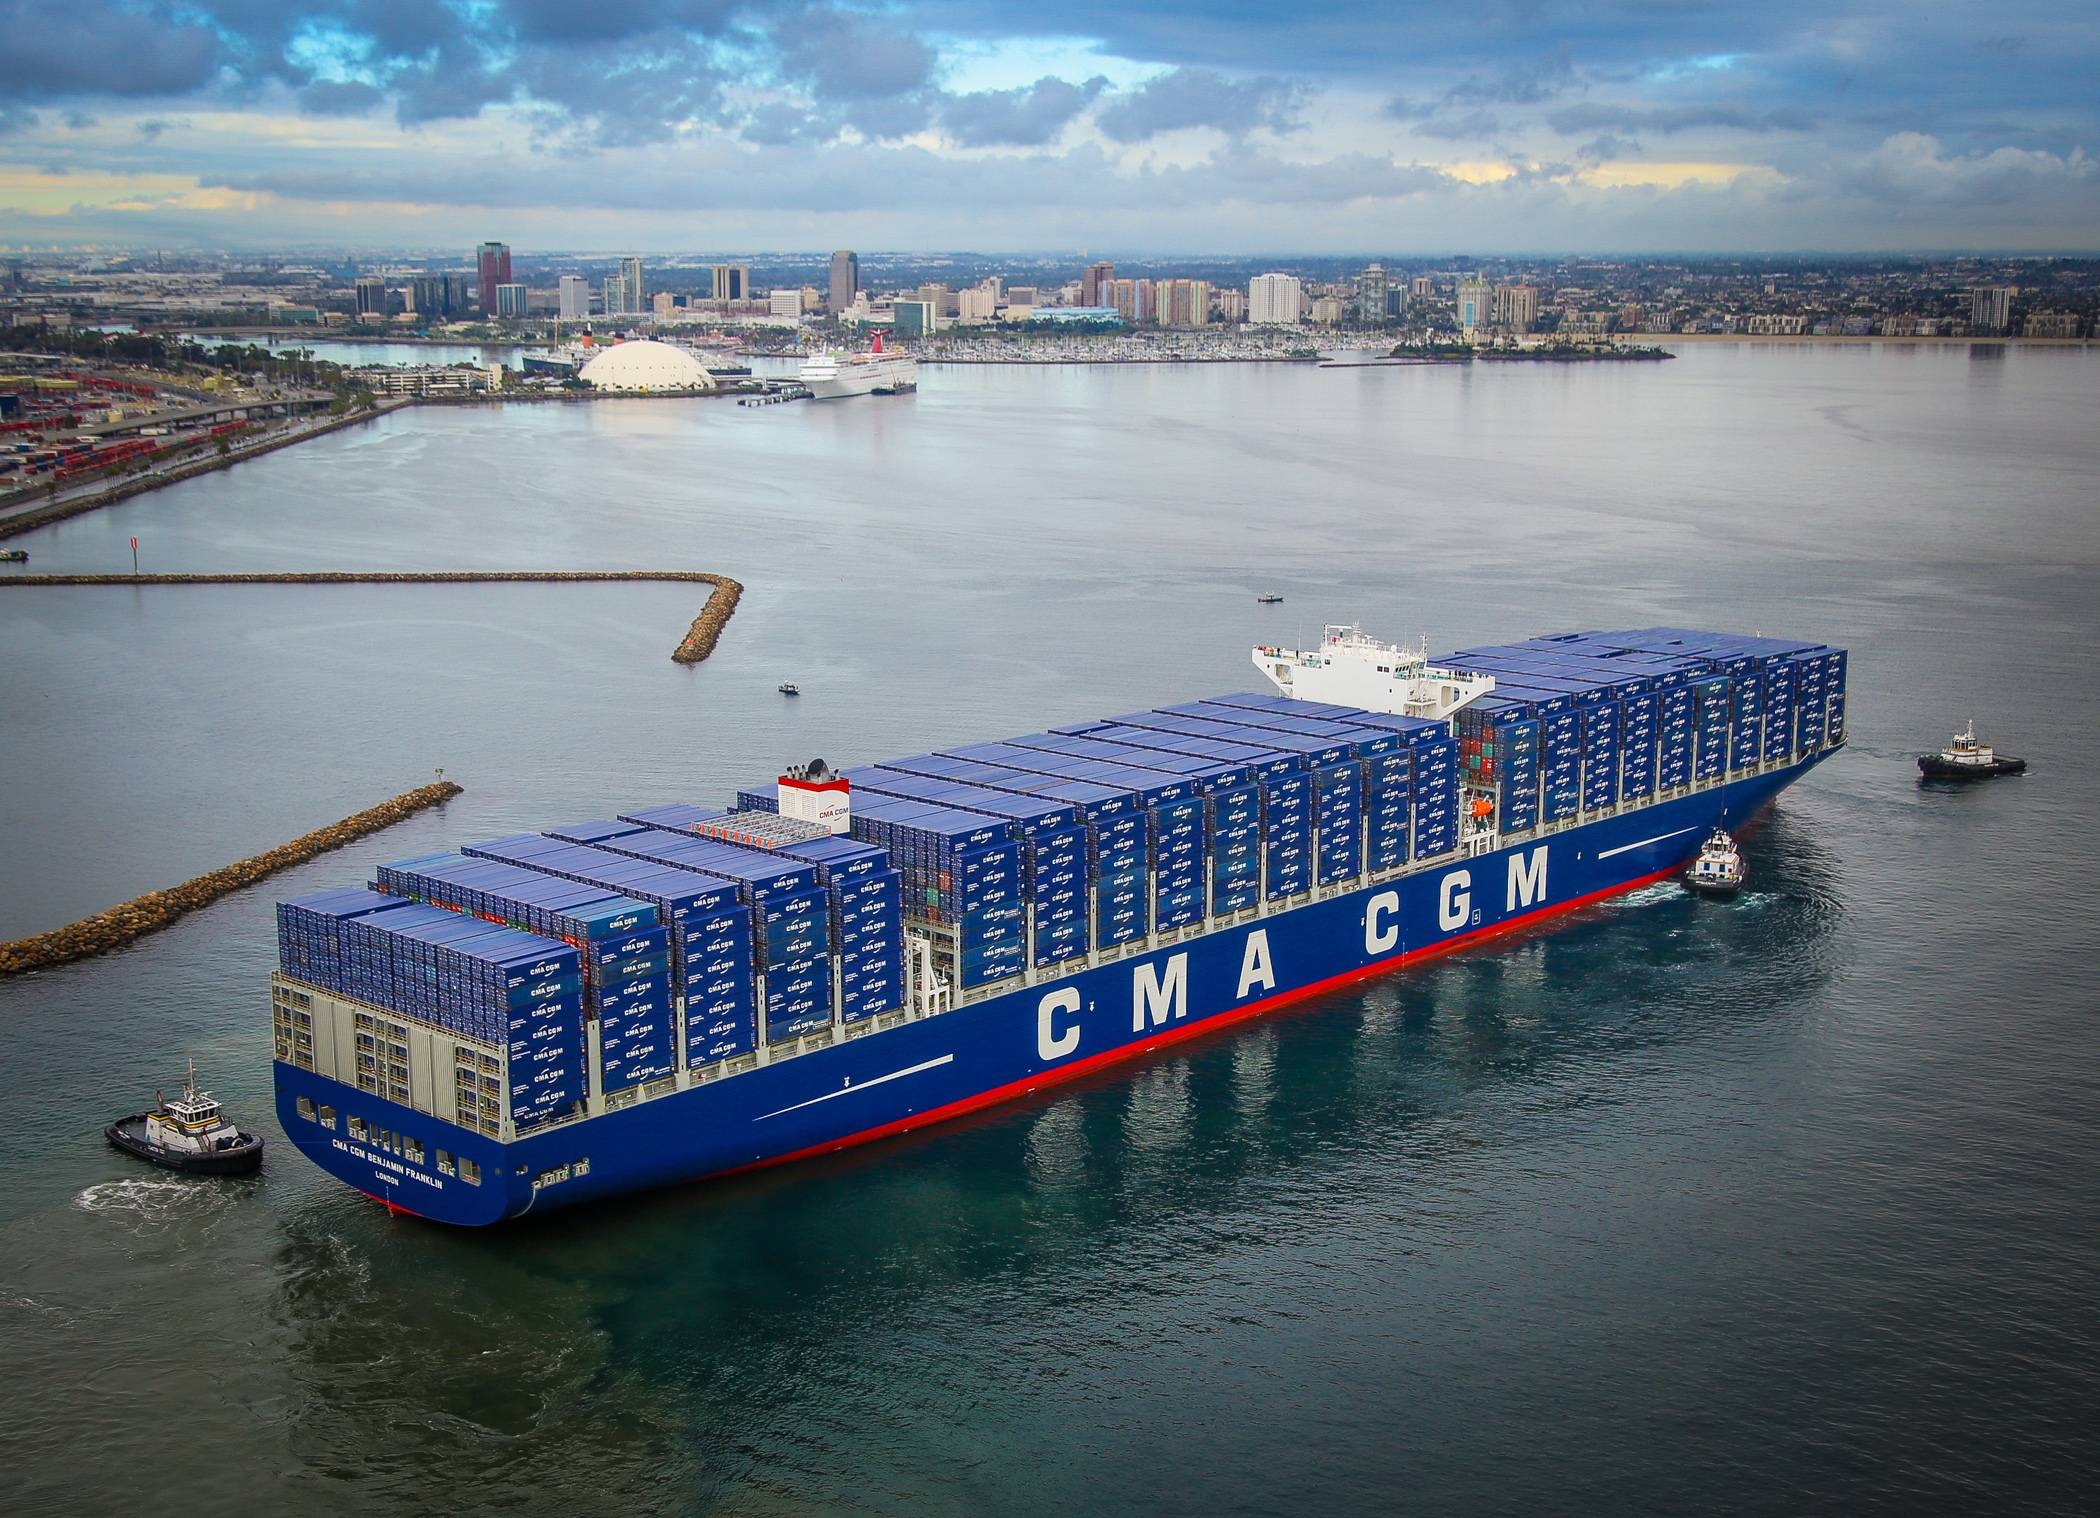 CMA CGM sees further profit rise in H2 on improving shipping sector